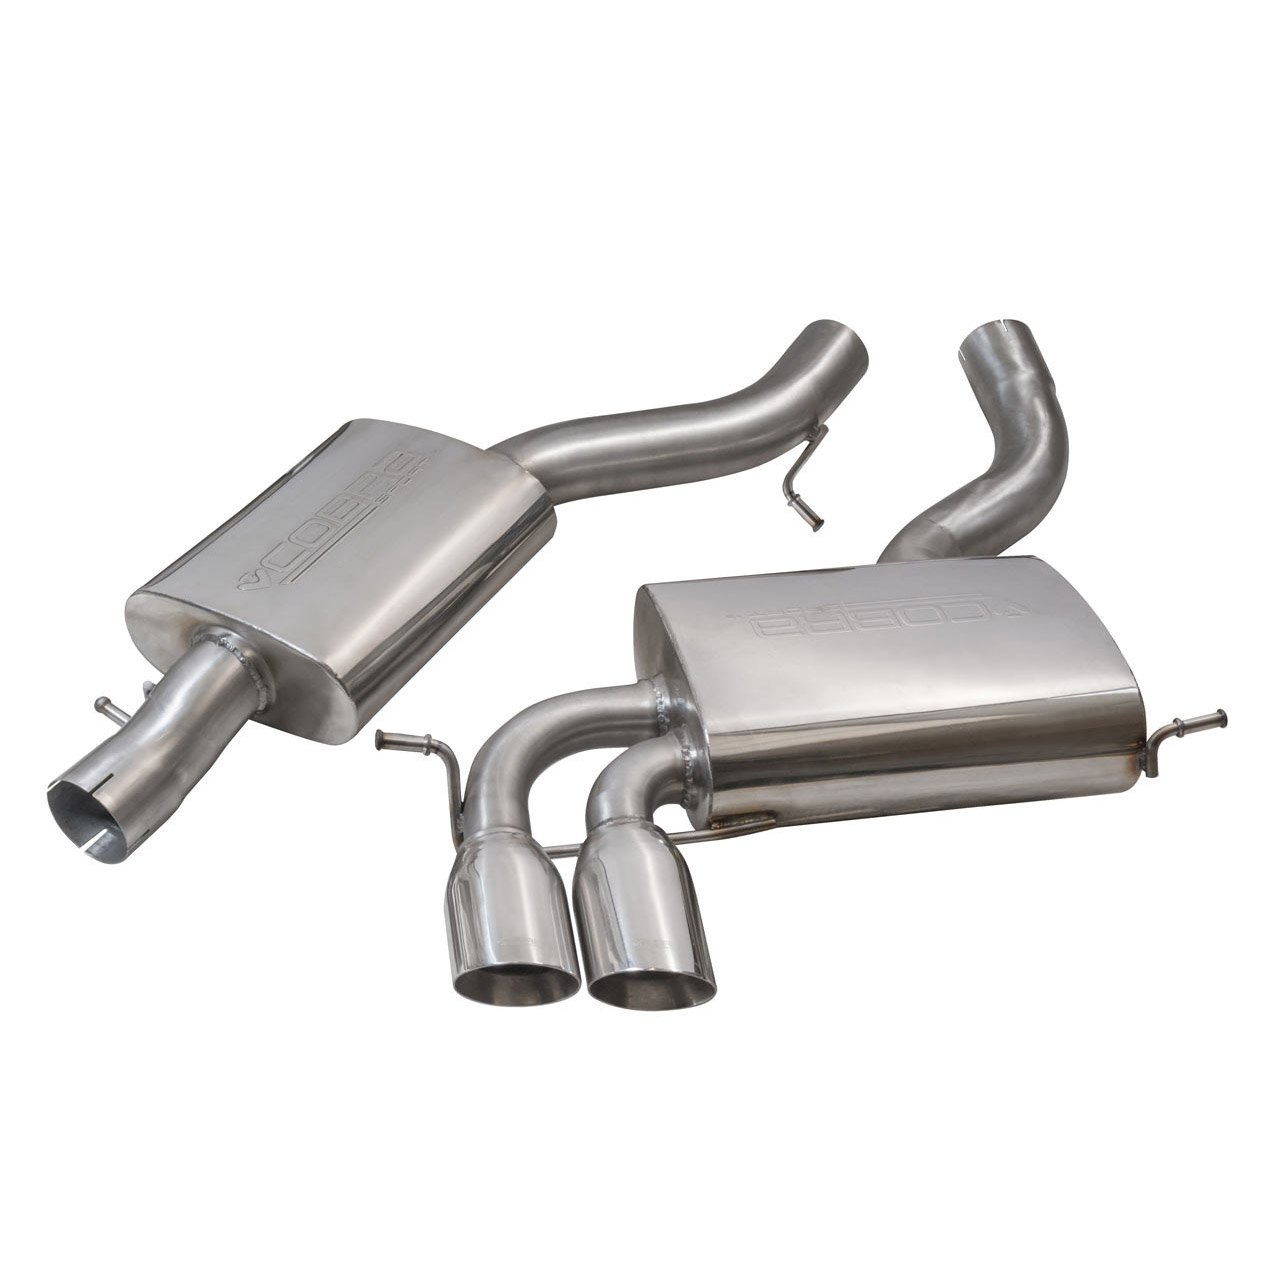 Audi A3 (8P) 3.2 V6 Quattro Cat Back Performance Exhaust